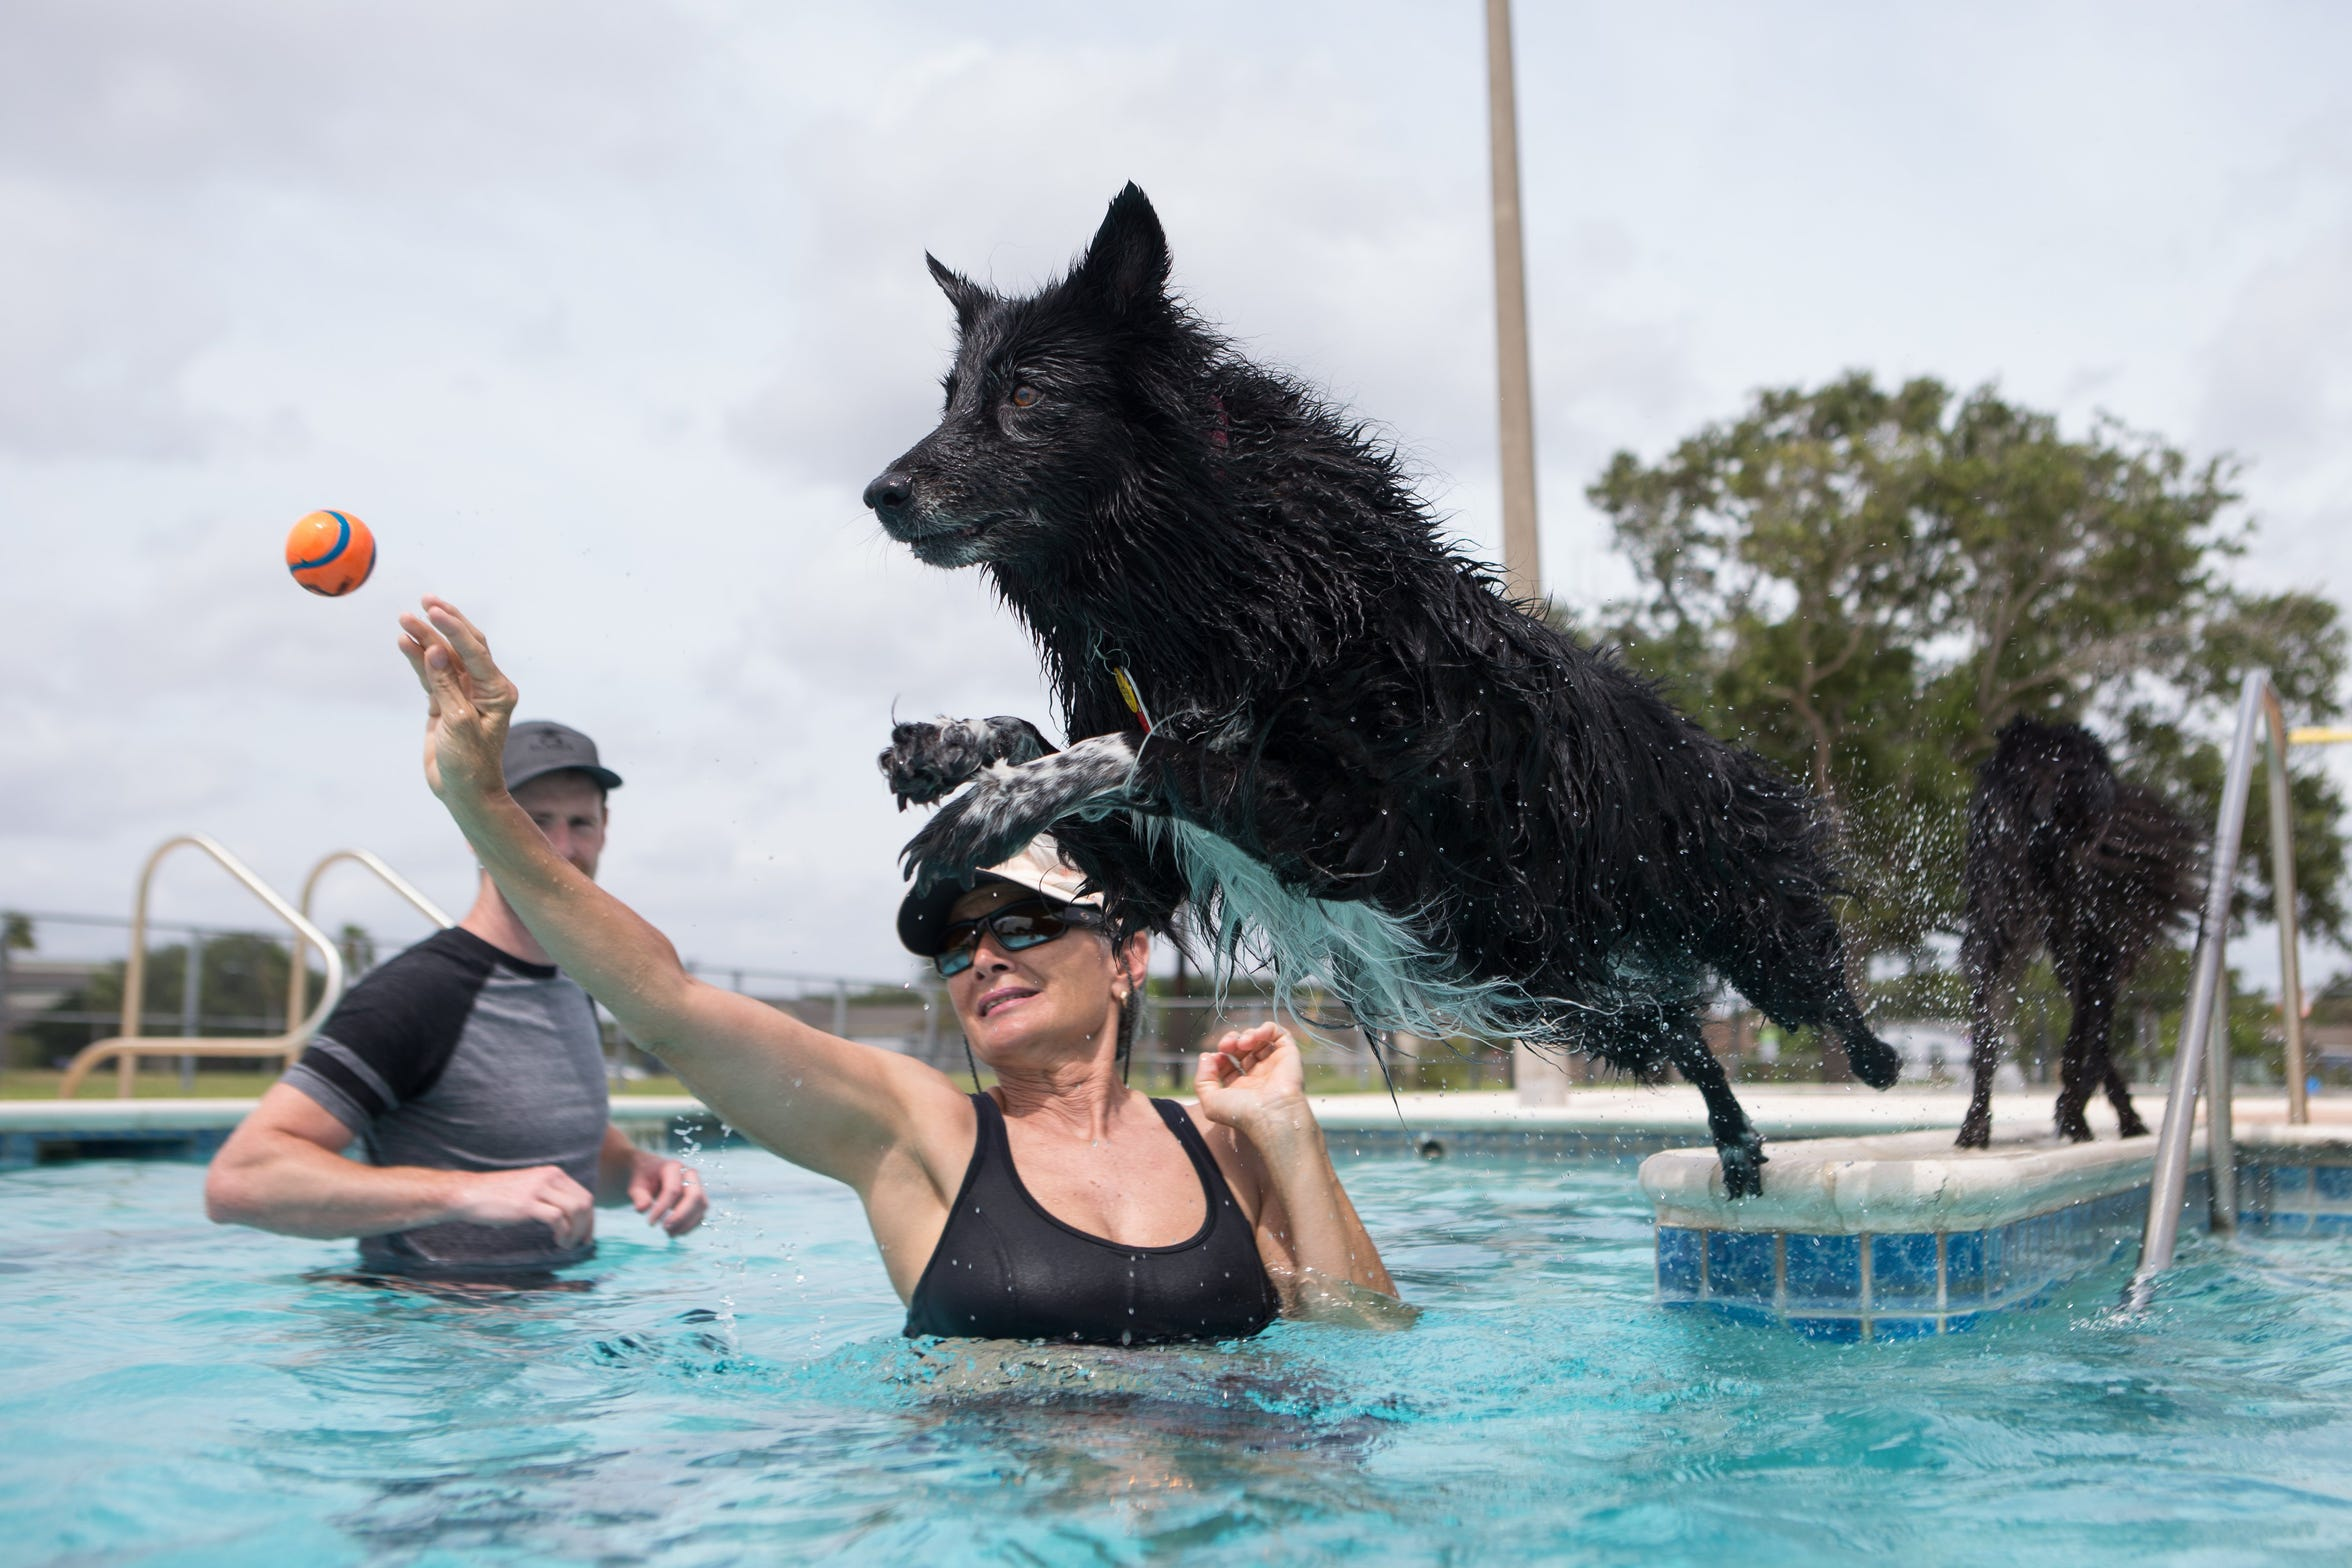 The City of Corpus Christi Parks and Recreation Dept.'s annual Doggy Dip is from 10 a.m. to 1 p.m. Saturday, Aug. 18 at HEB Pool, 1520 Shely St.